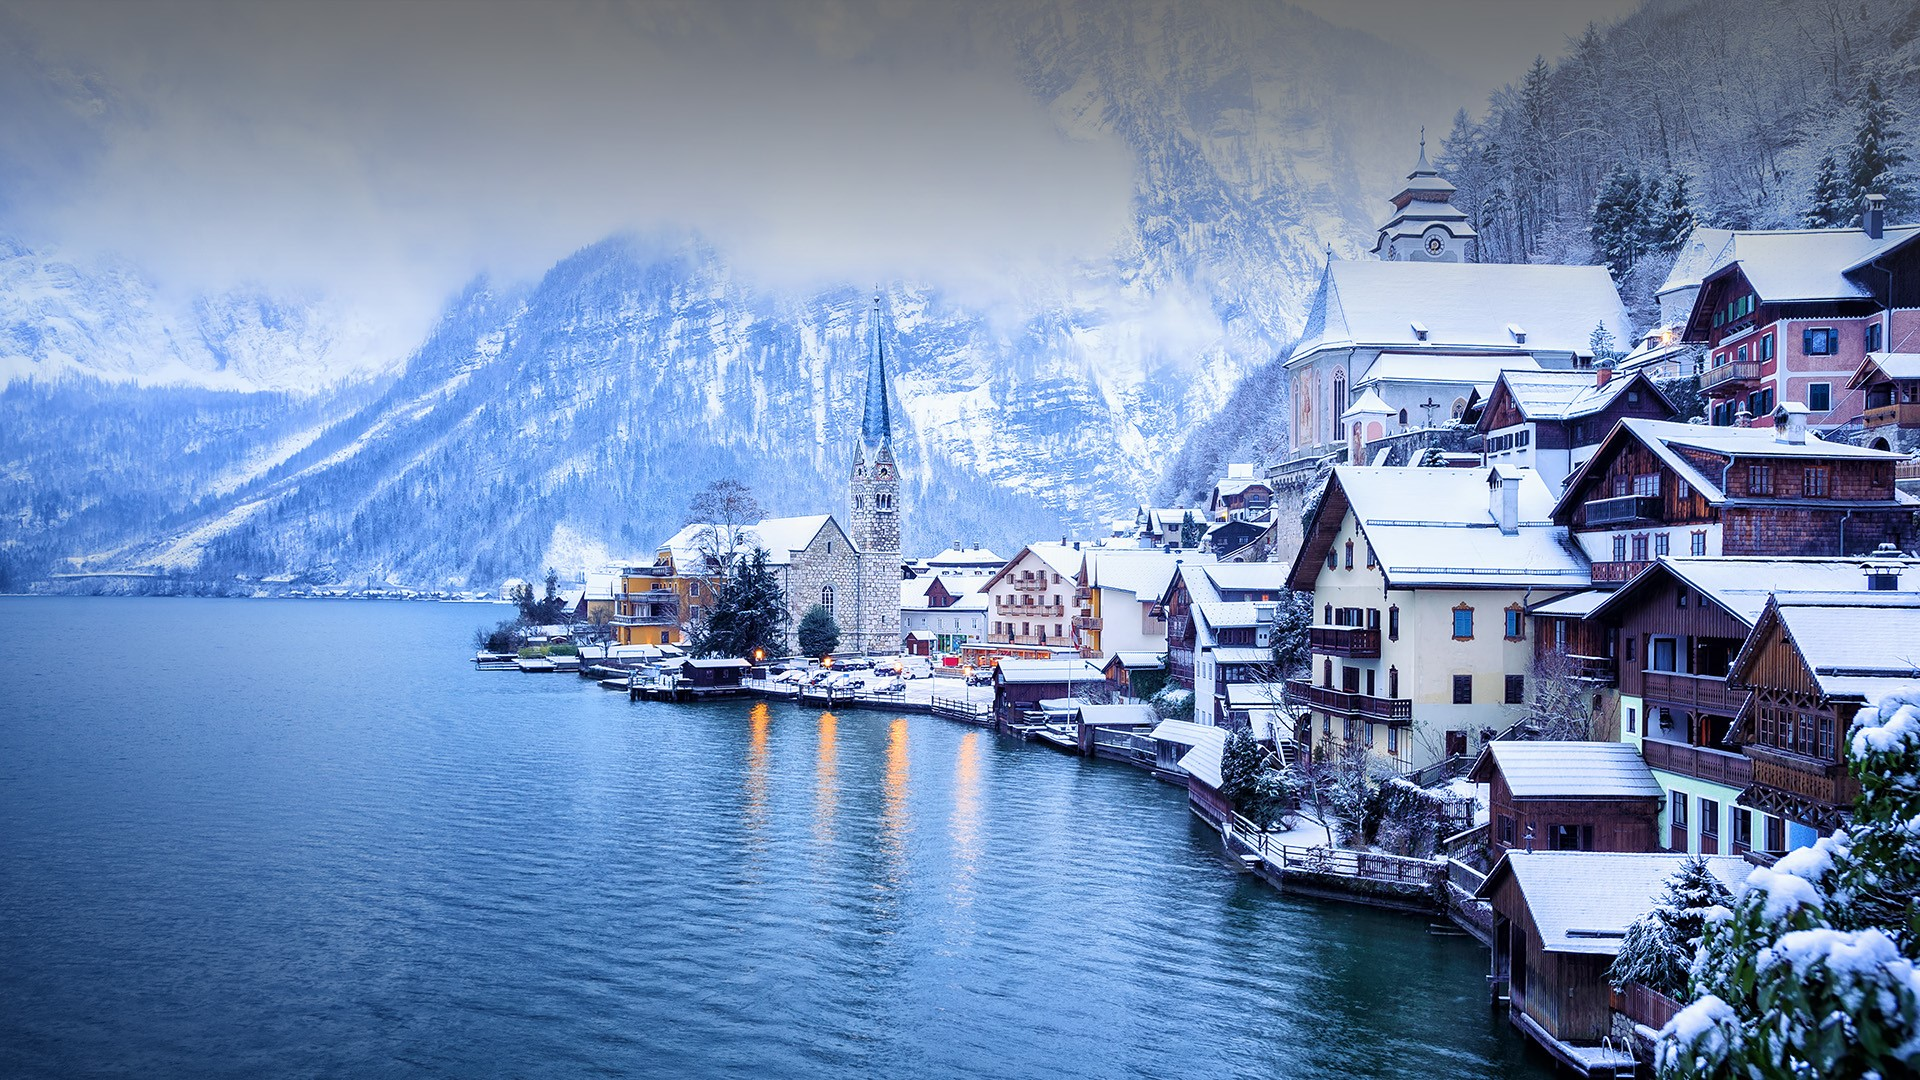 General 1920x1080 Hallstatt Austria landscape snow winter mountains water lake trees forest mist church house